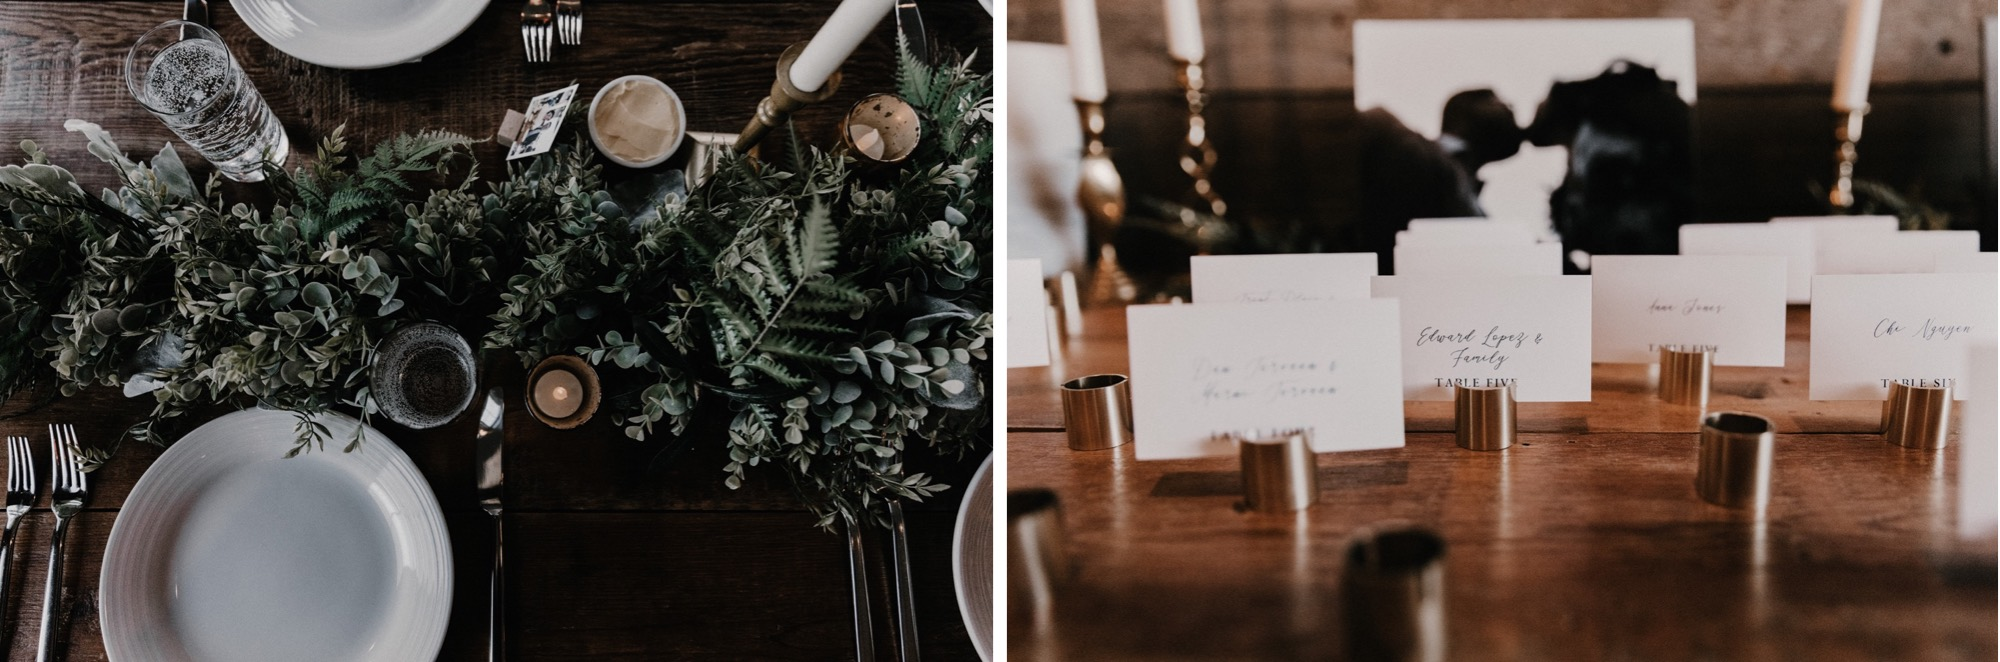 greenery and gold details on tables for wedding at rapid creek cidery